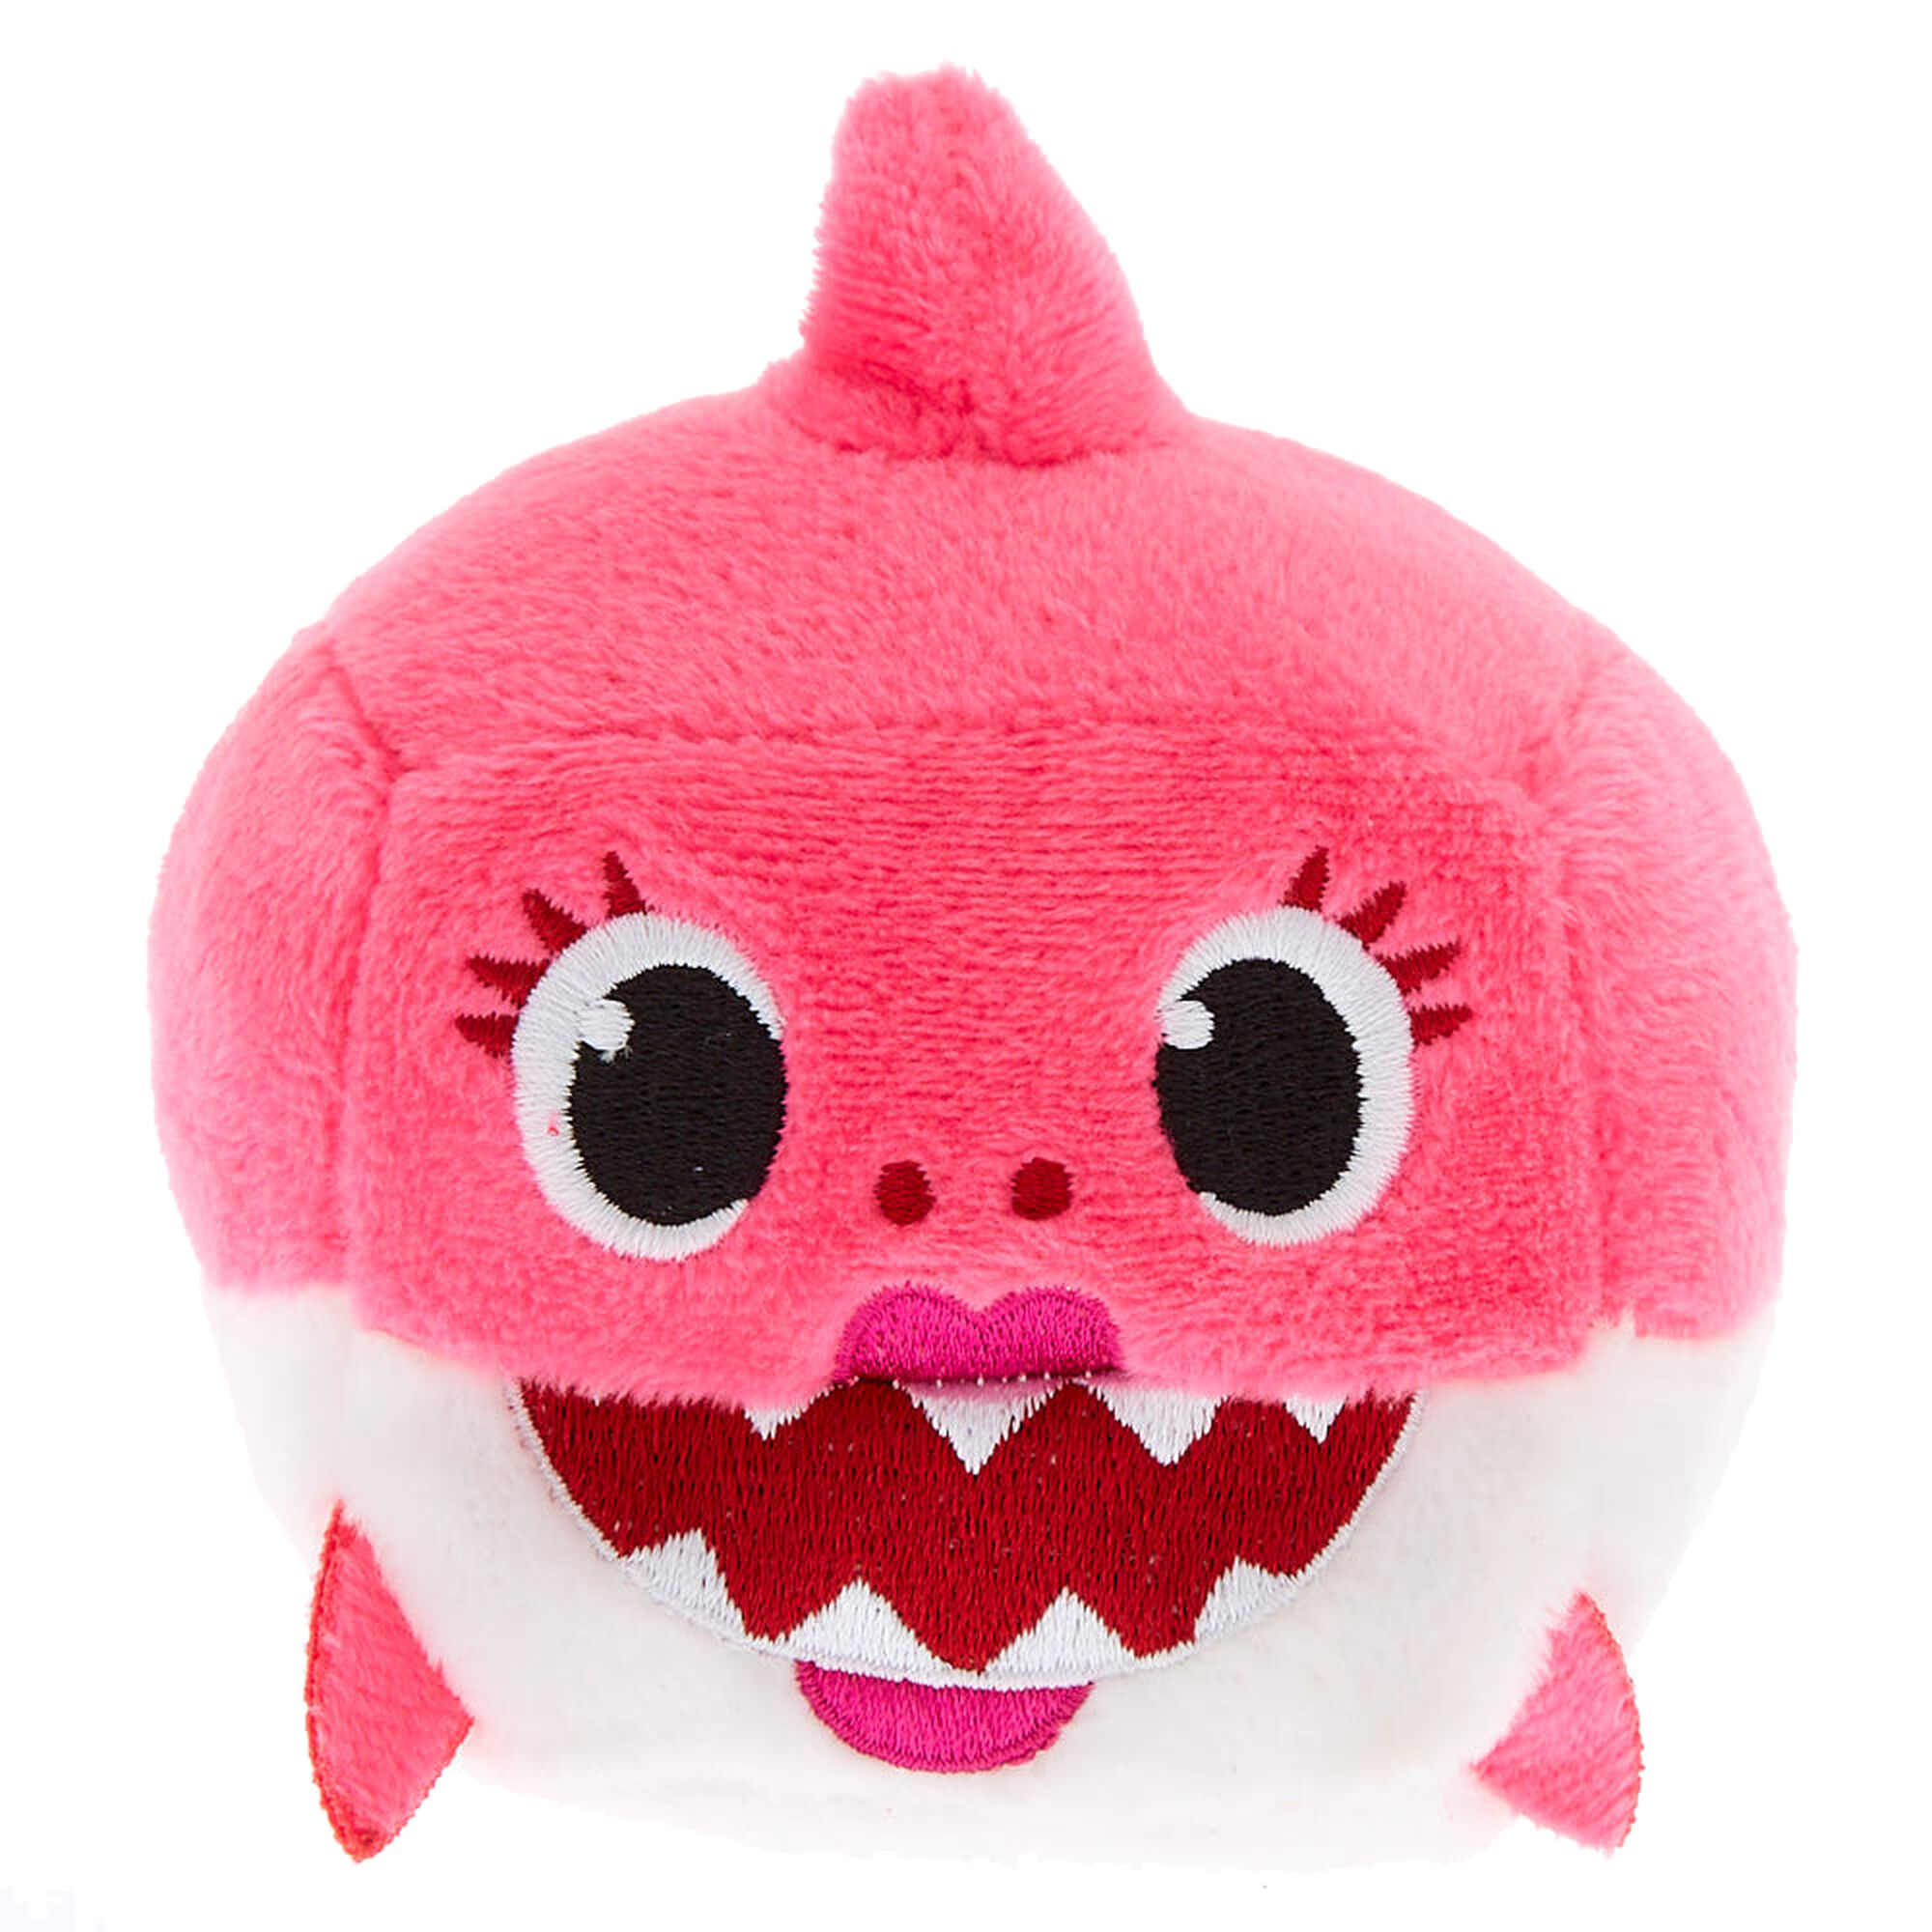 34922ed2f Pinkfong Baby Shark Plush Cube Toy - Styles May Vary | Claire's US